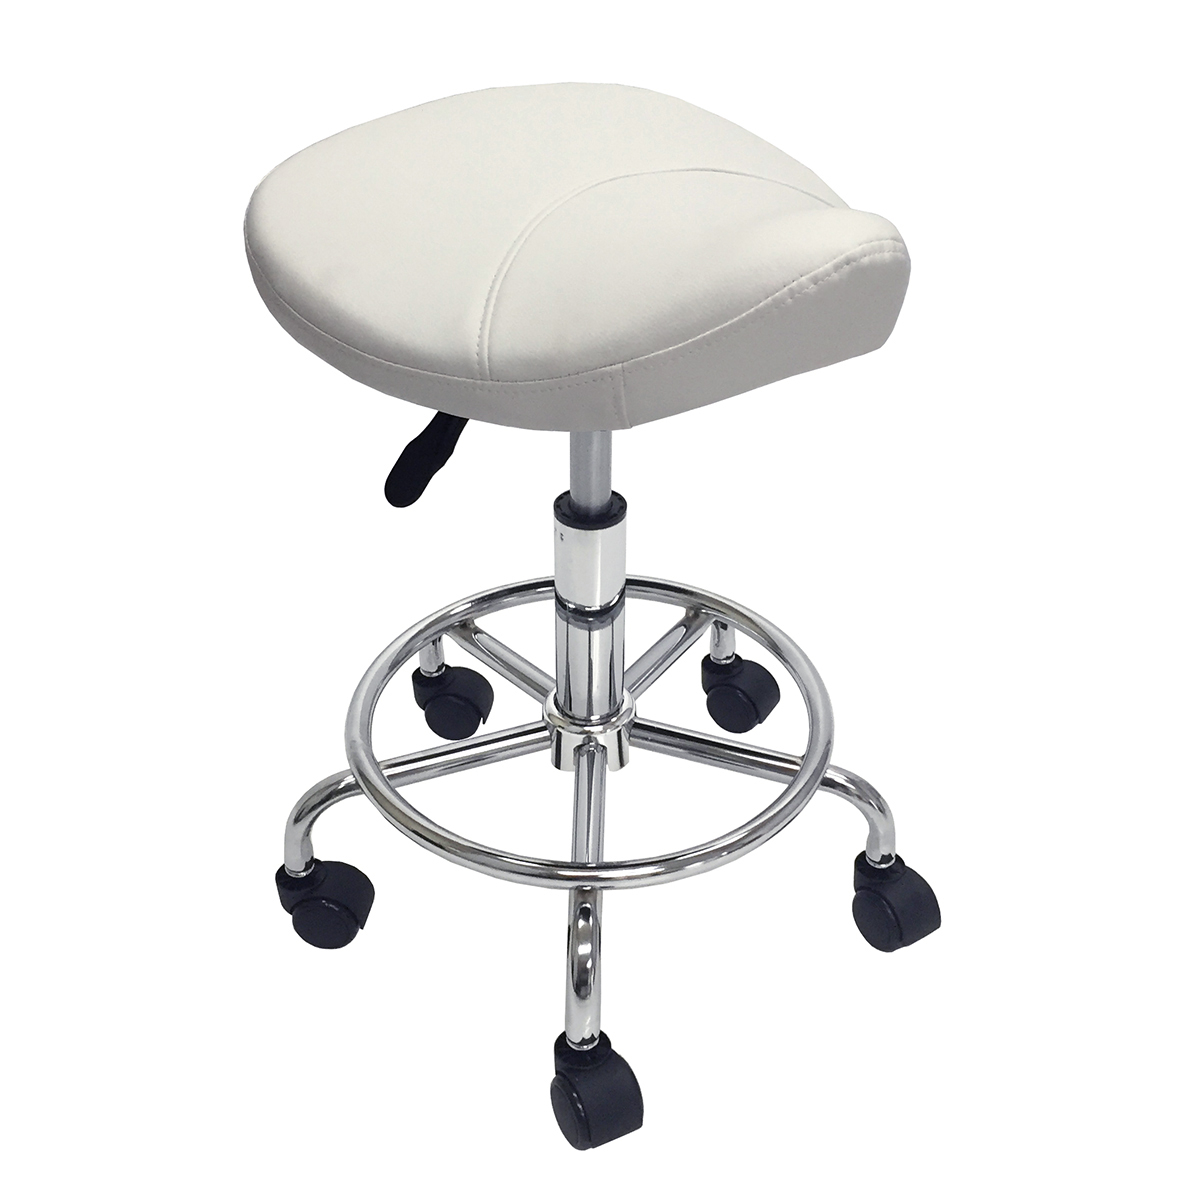 chair stool with footrest target high booster seat 2 saddle salon doctor dentist spa office